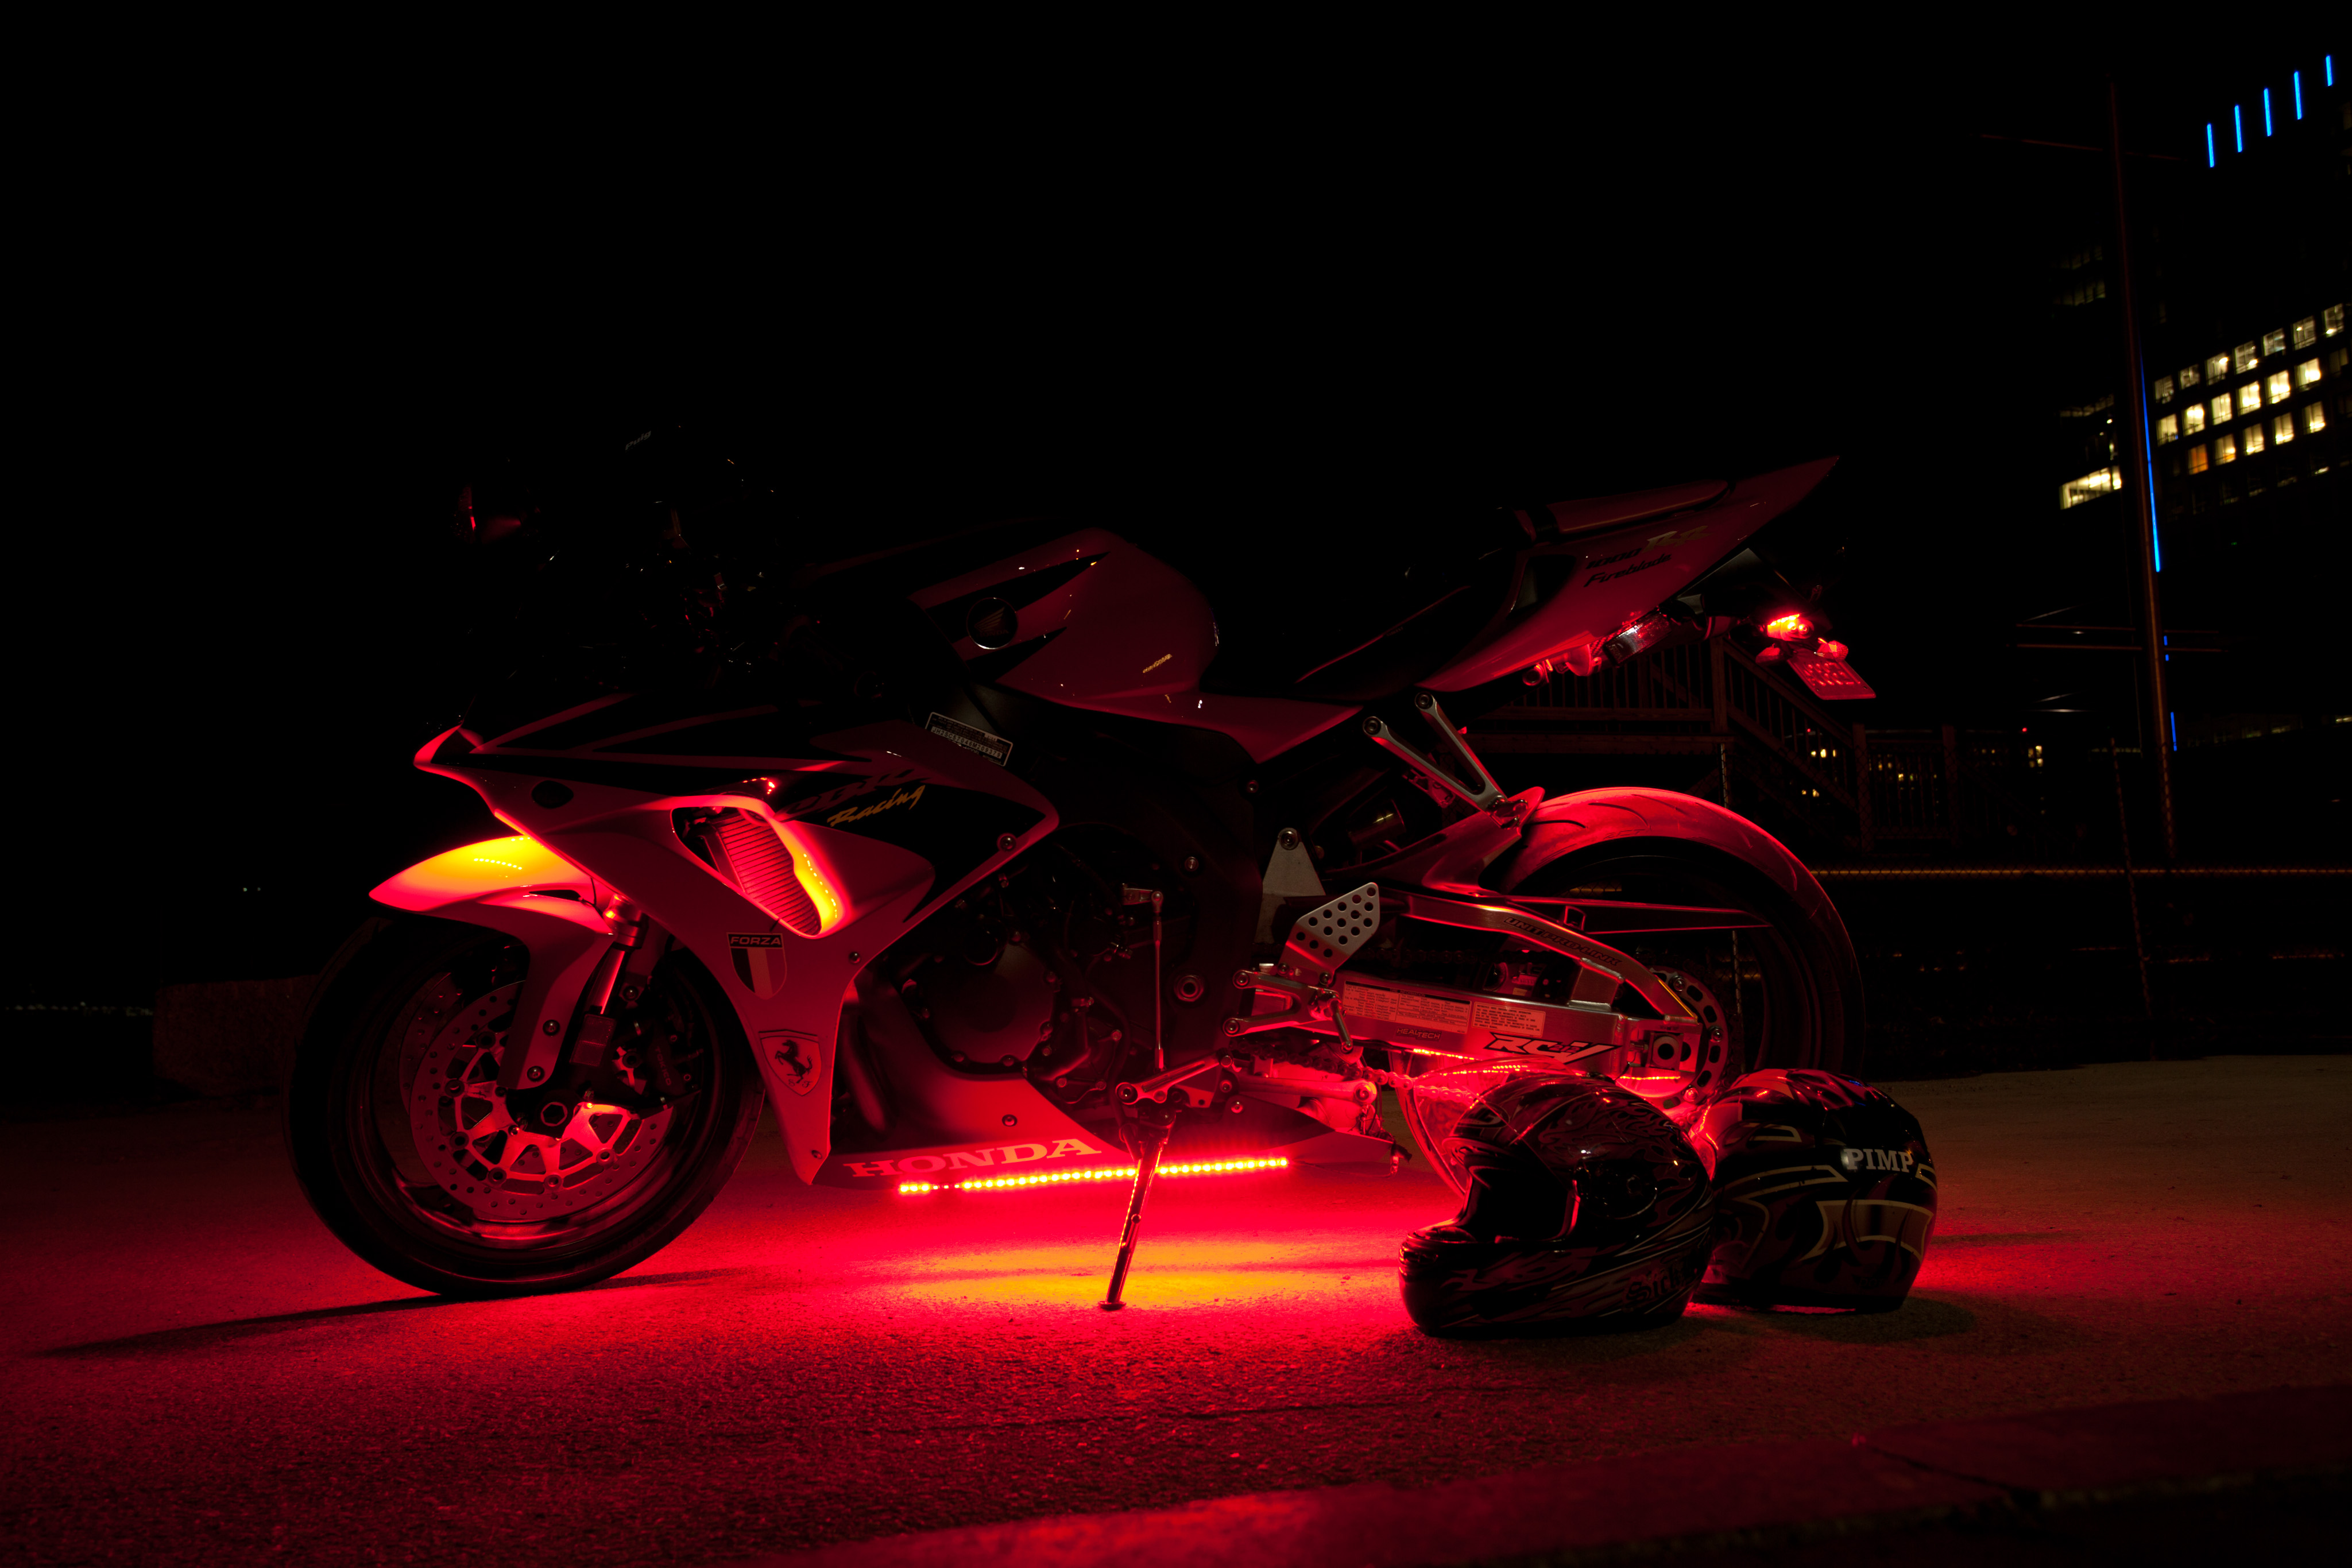 Light Up Motorcycle Helmet : Motorcycle Review and Galleries